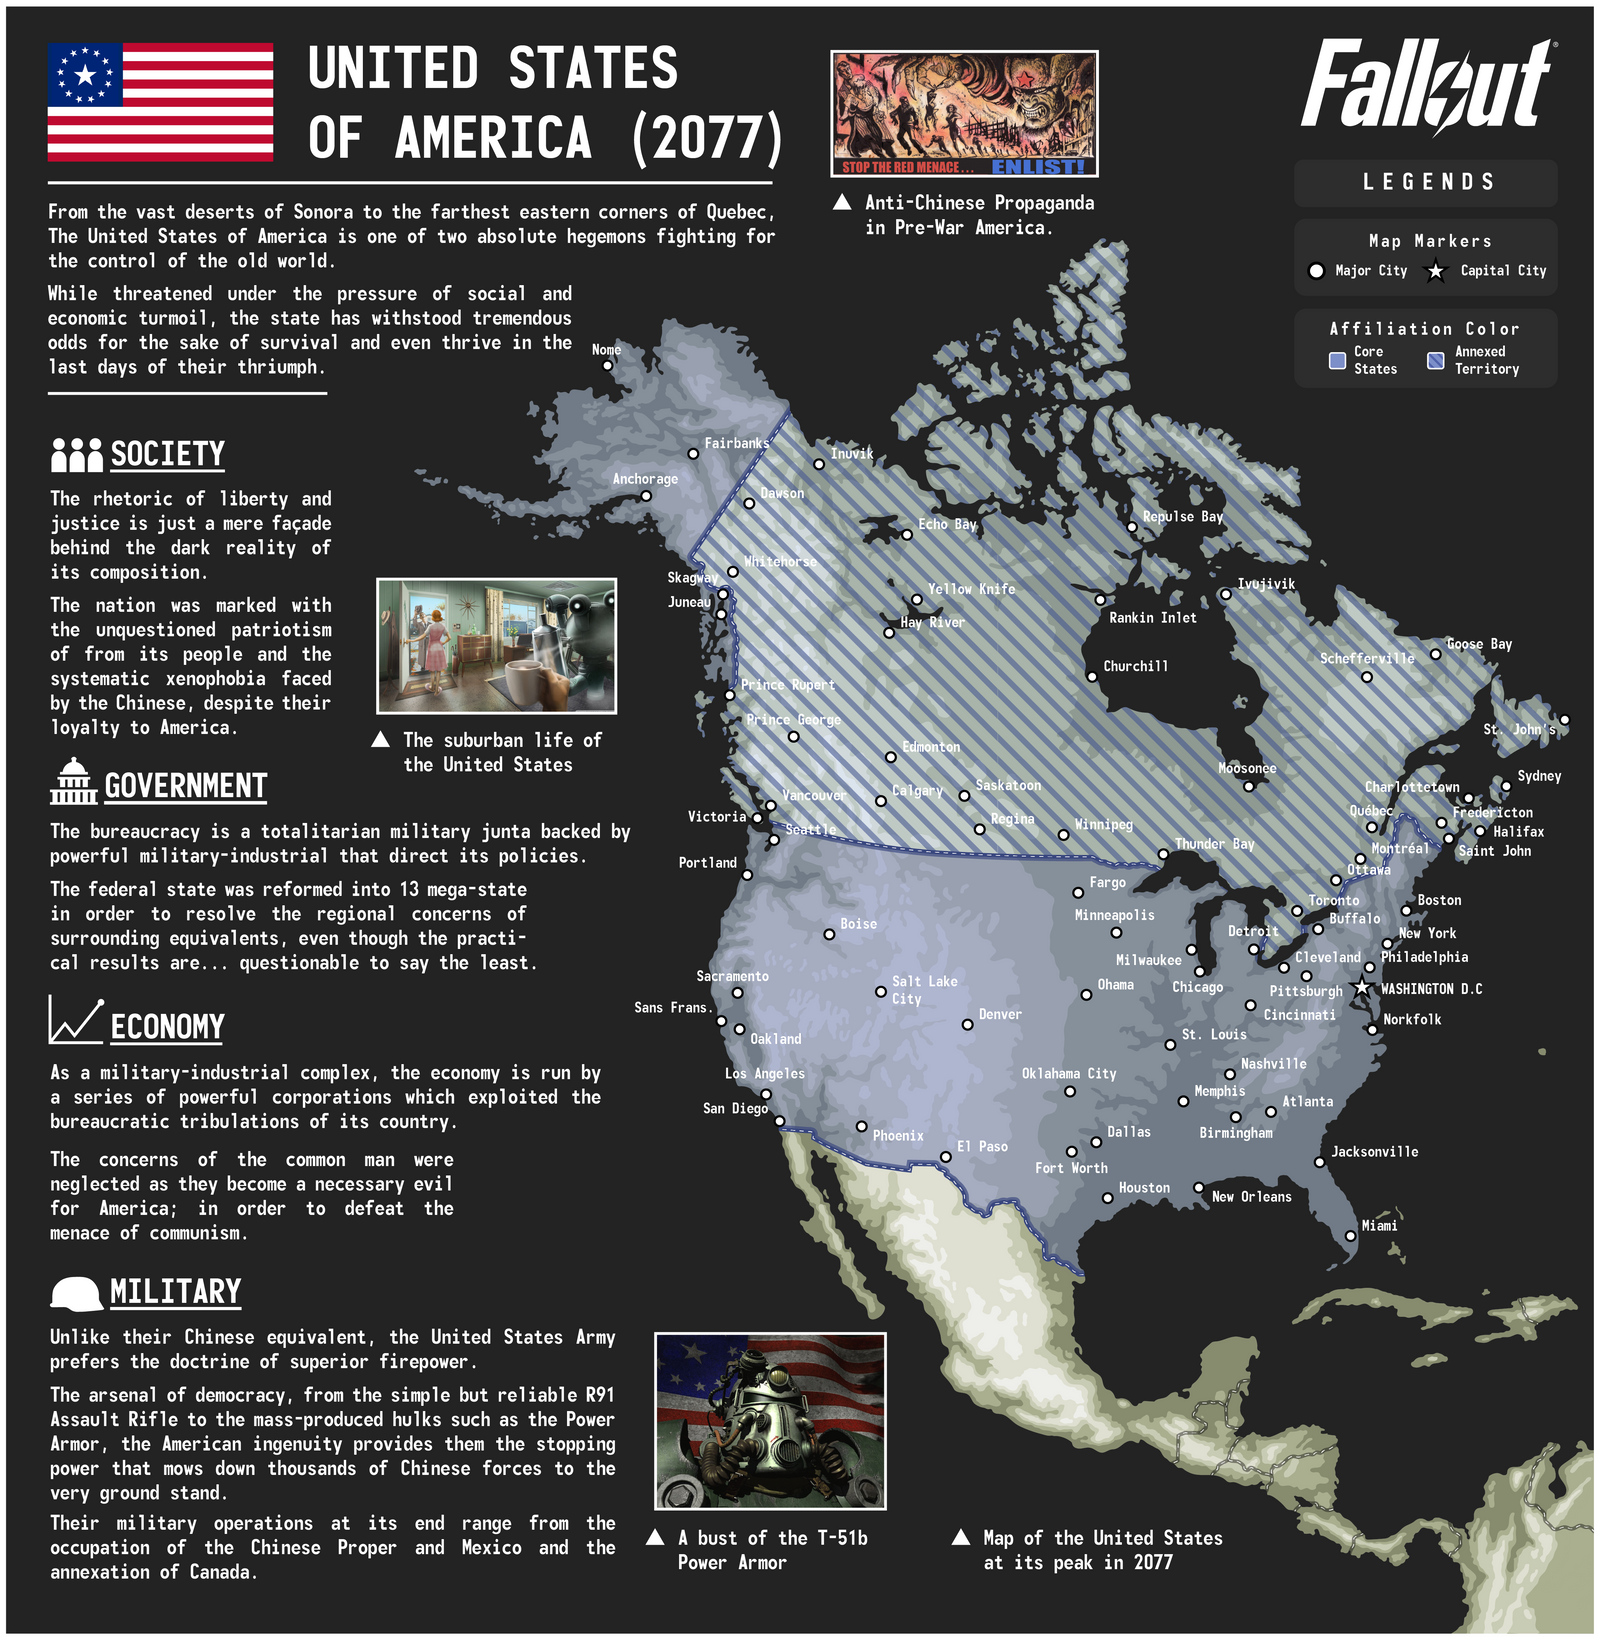 Fallout - United State of America (2077)